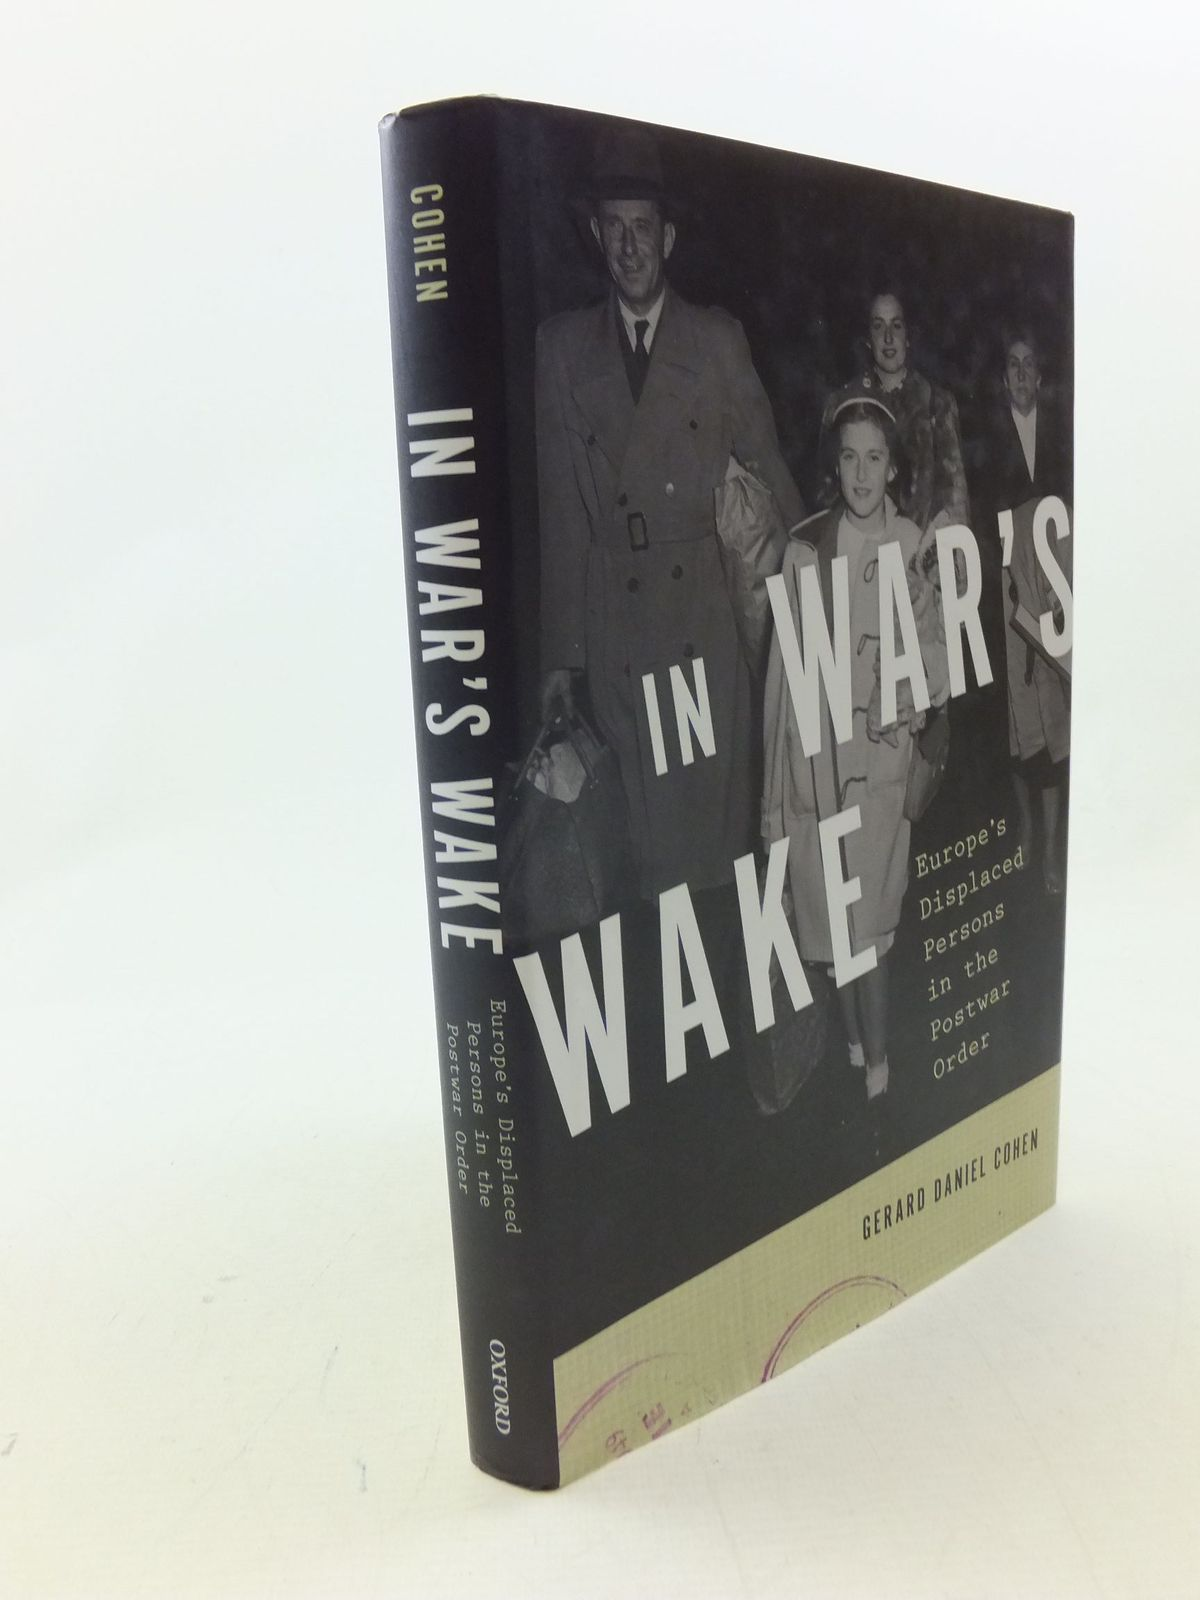 Photo of IN WAR'S WAKE written by Cohen, Gerard Daniel published by Oxford University Press (STOCK CODE: 1710700)  for sale by Stella & Rose's Books